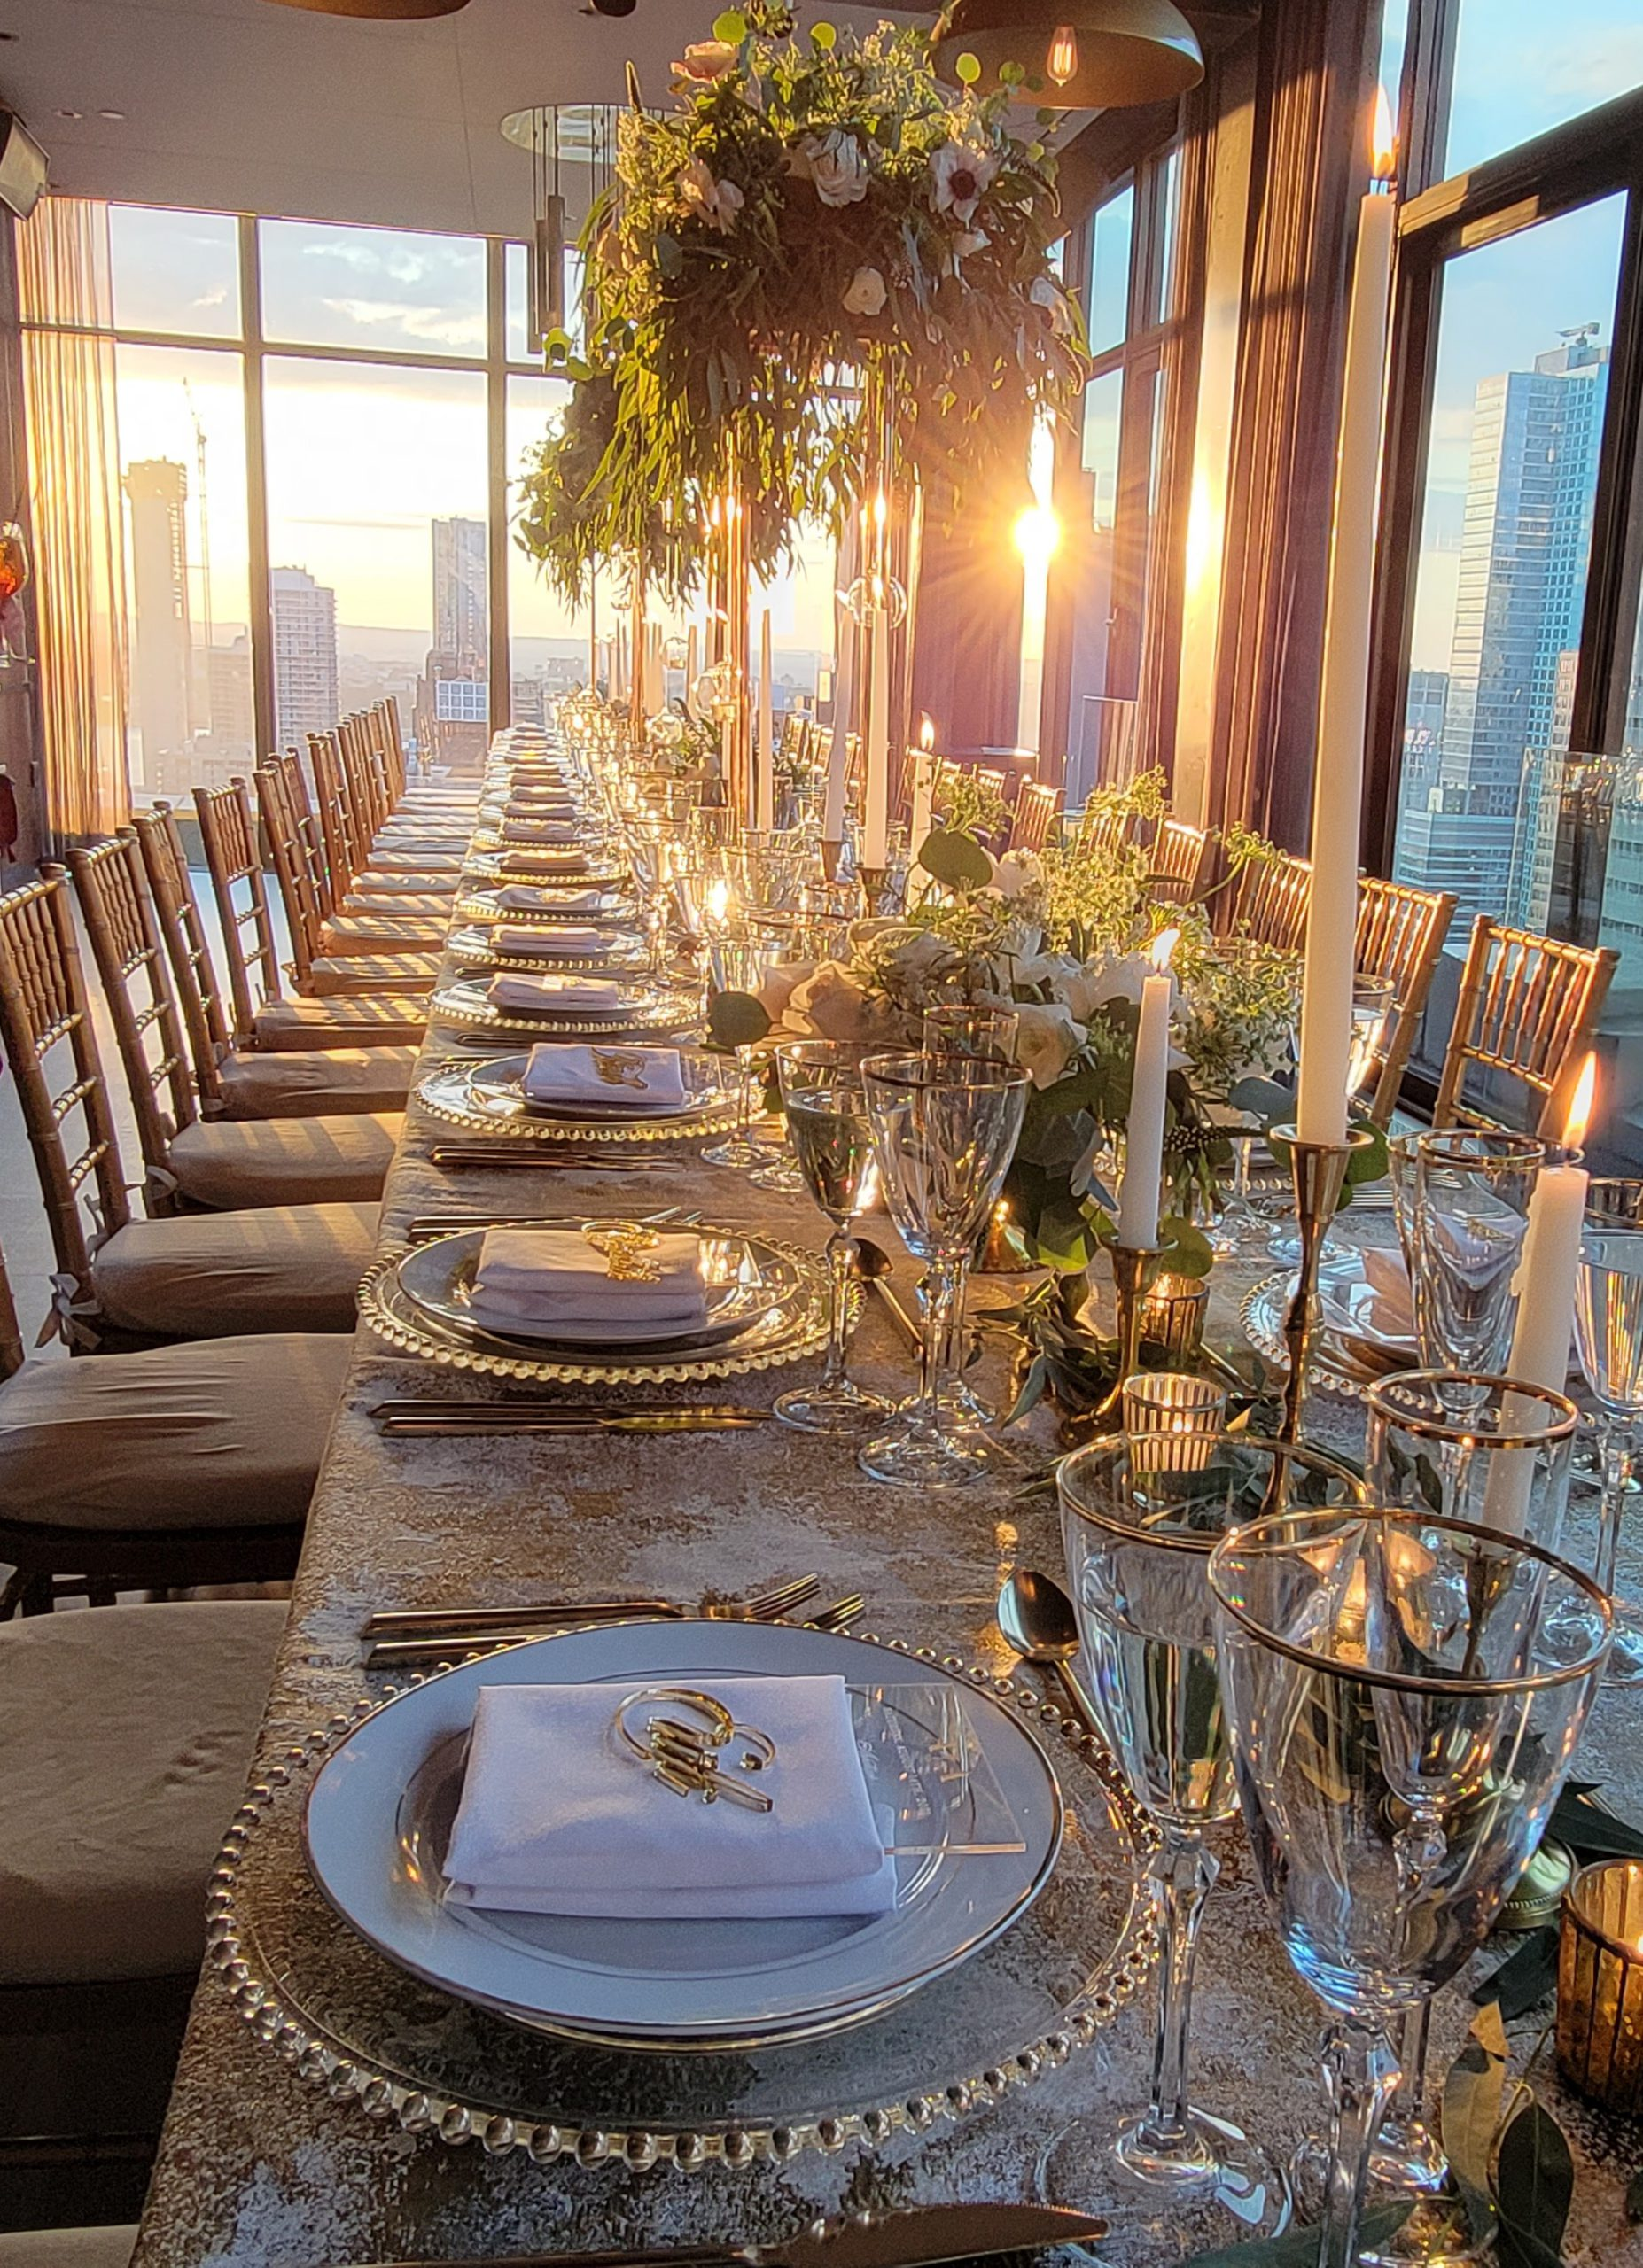 long table with sunset